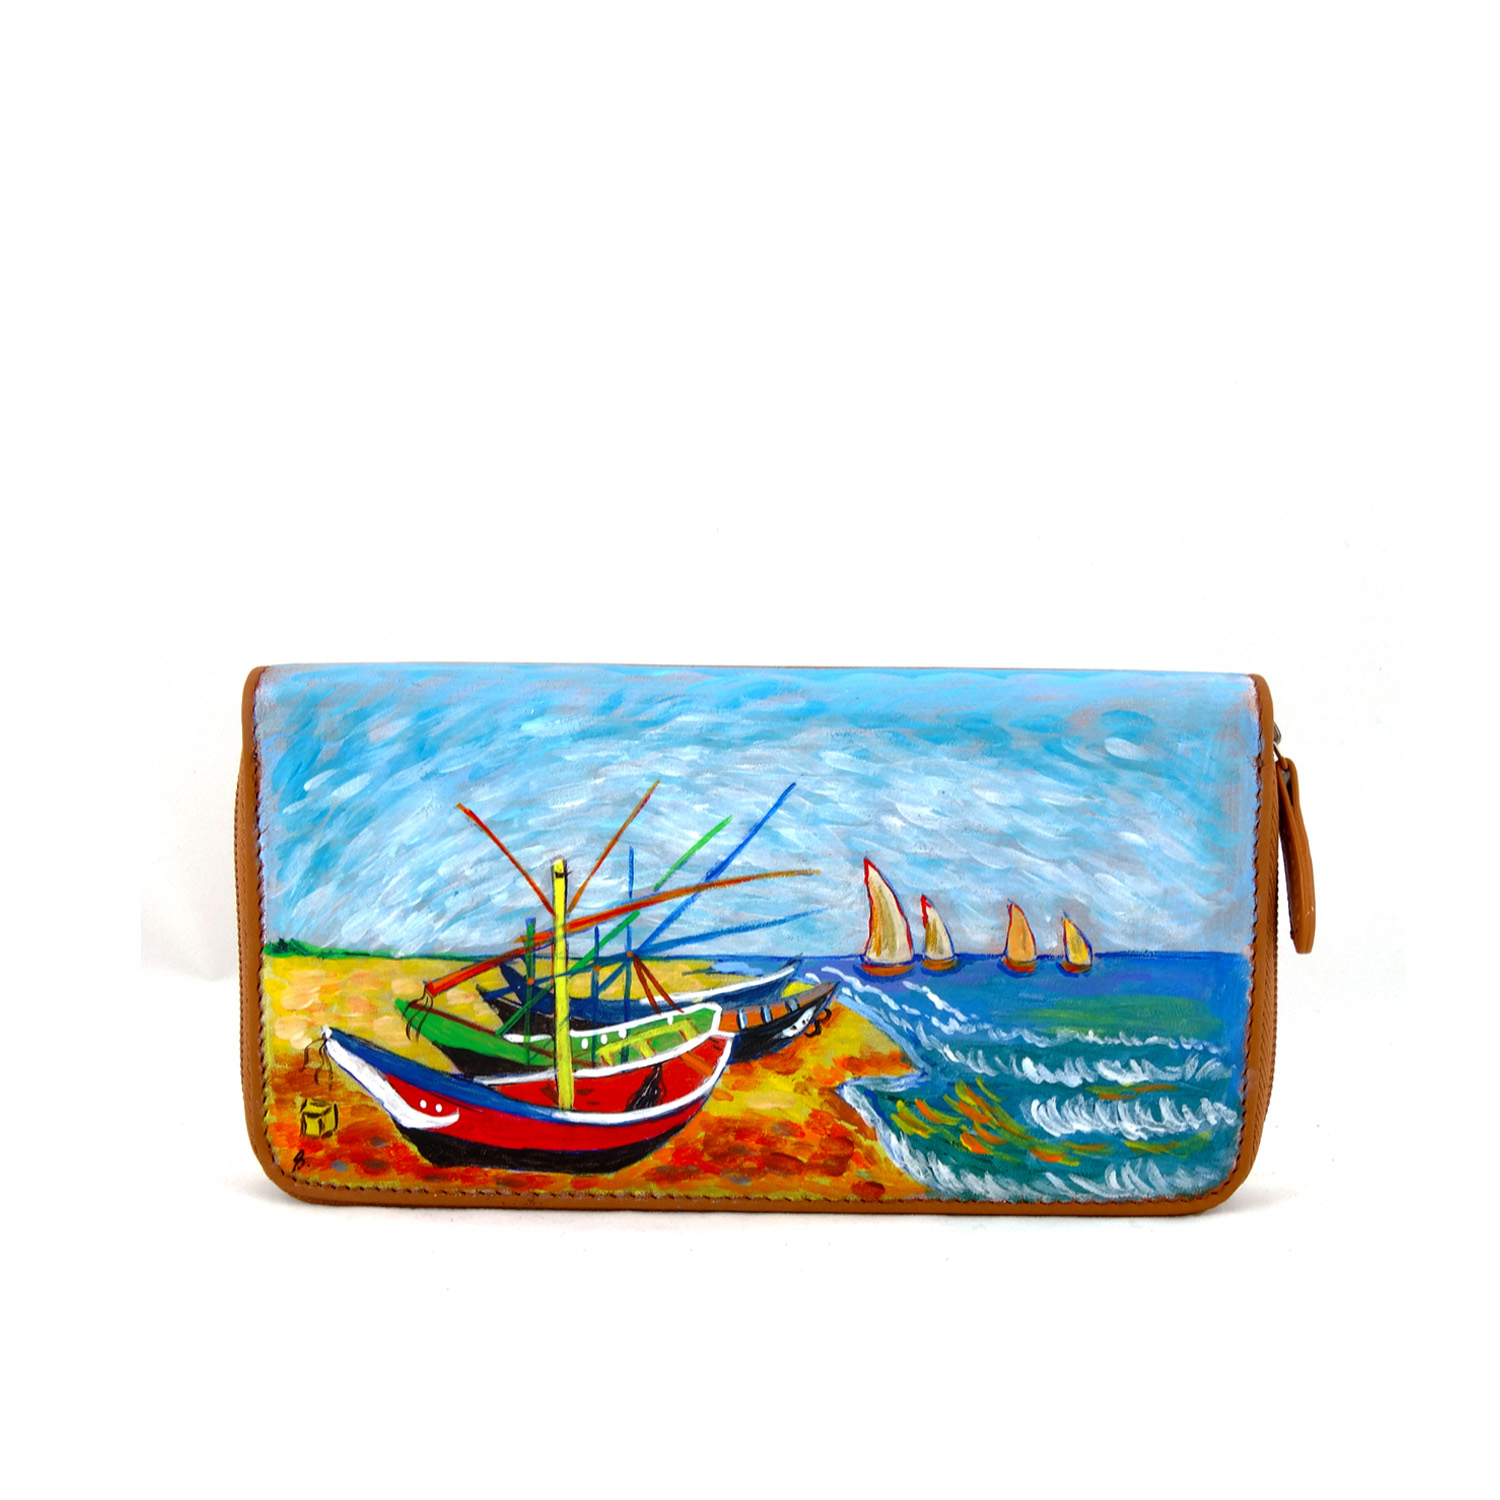 Hand painted wallet - Fishing boats on the beach of Les Saintes-Maries-de-la-Mer by Van Gogh